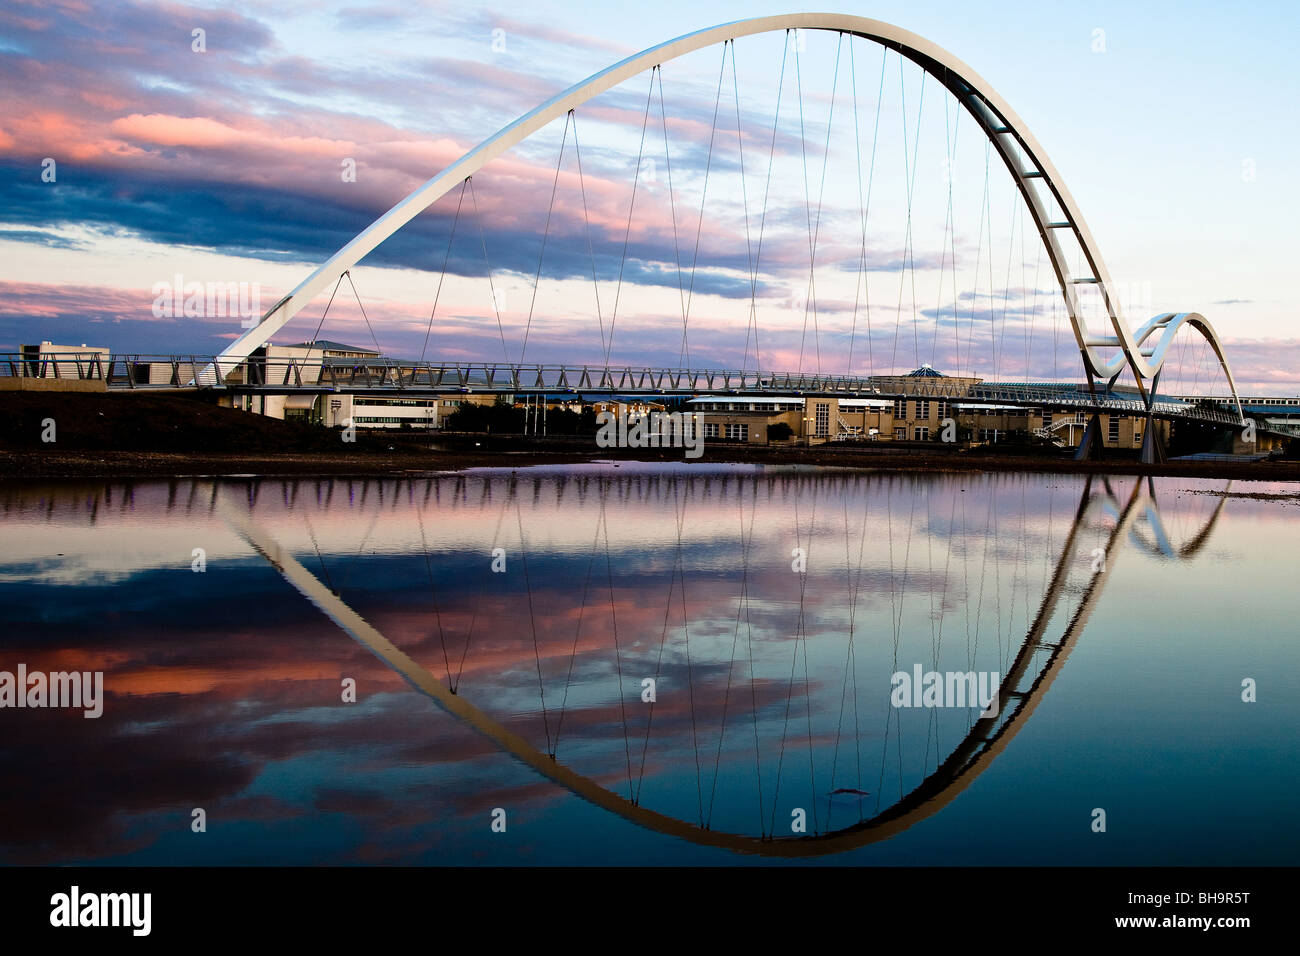 Infinity Bridge over River Tees - Stock Image